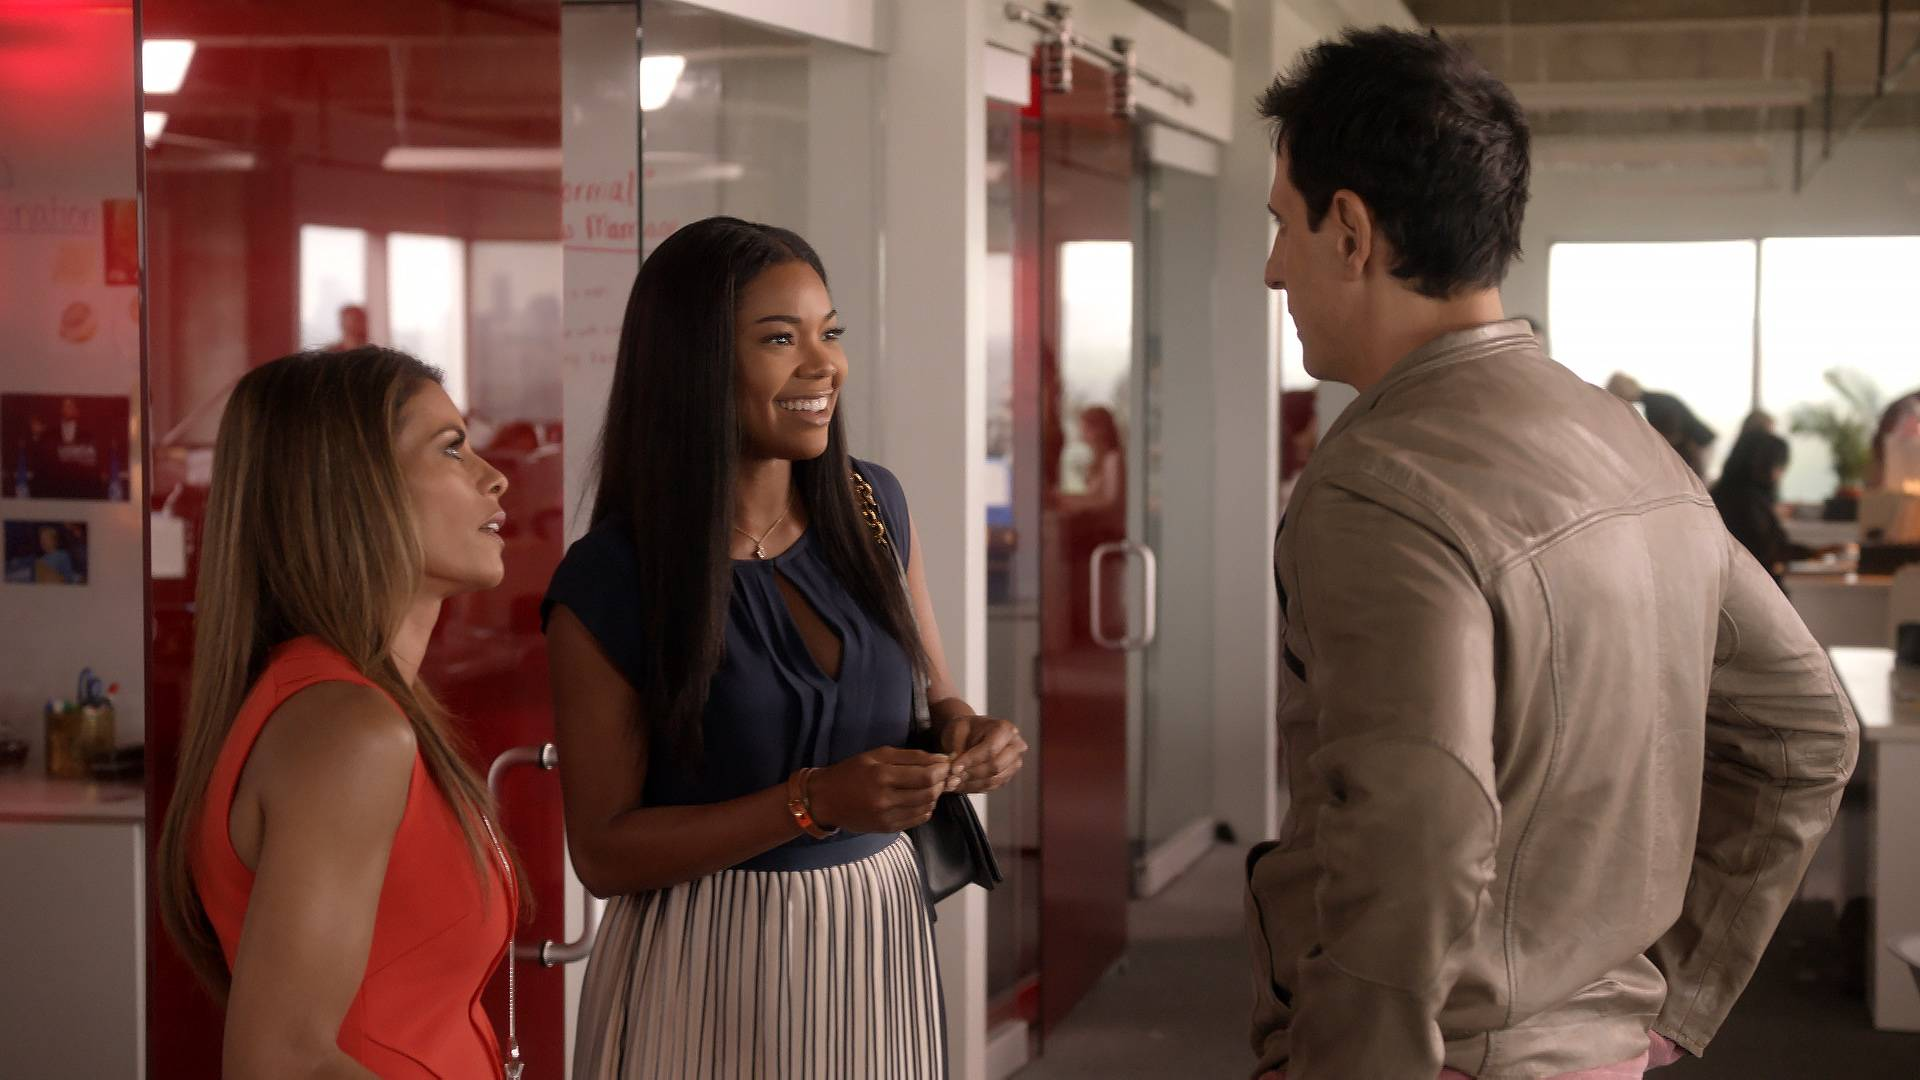 Kara's New Potential Boo  - Mary Jane takes a moment to be nosy and meet Kara's potential bae.    (Photo: BET)